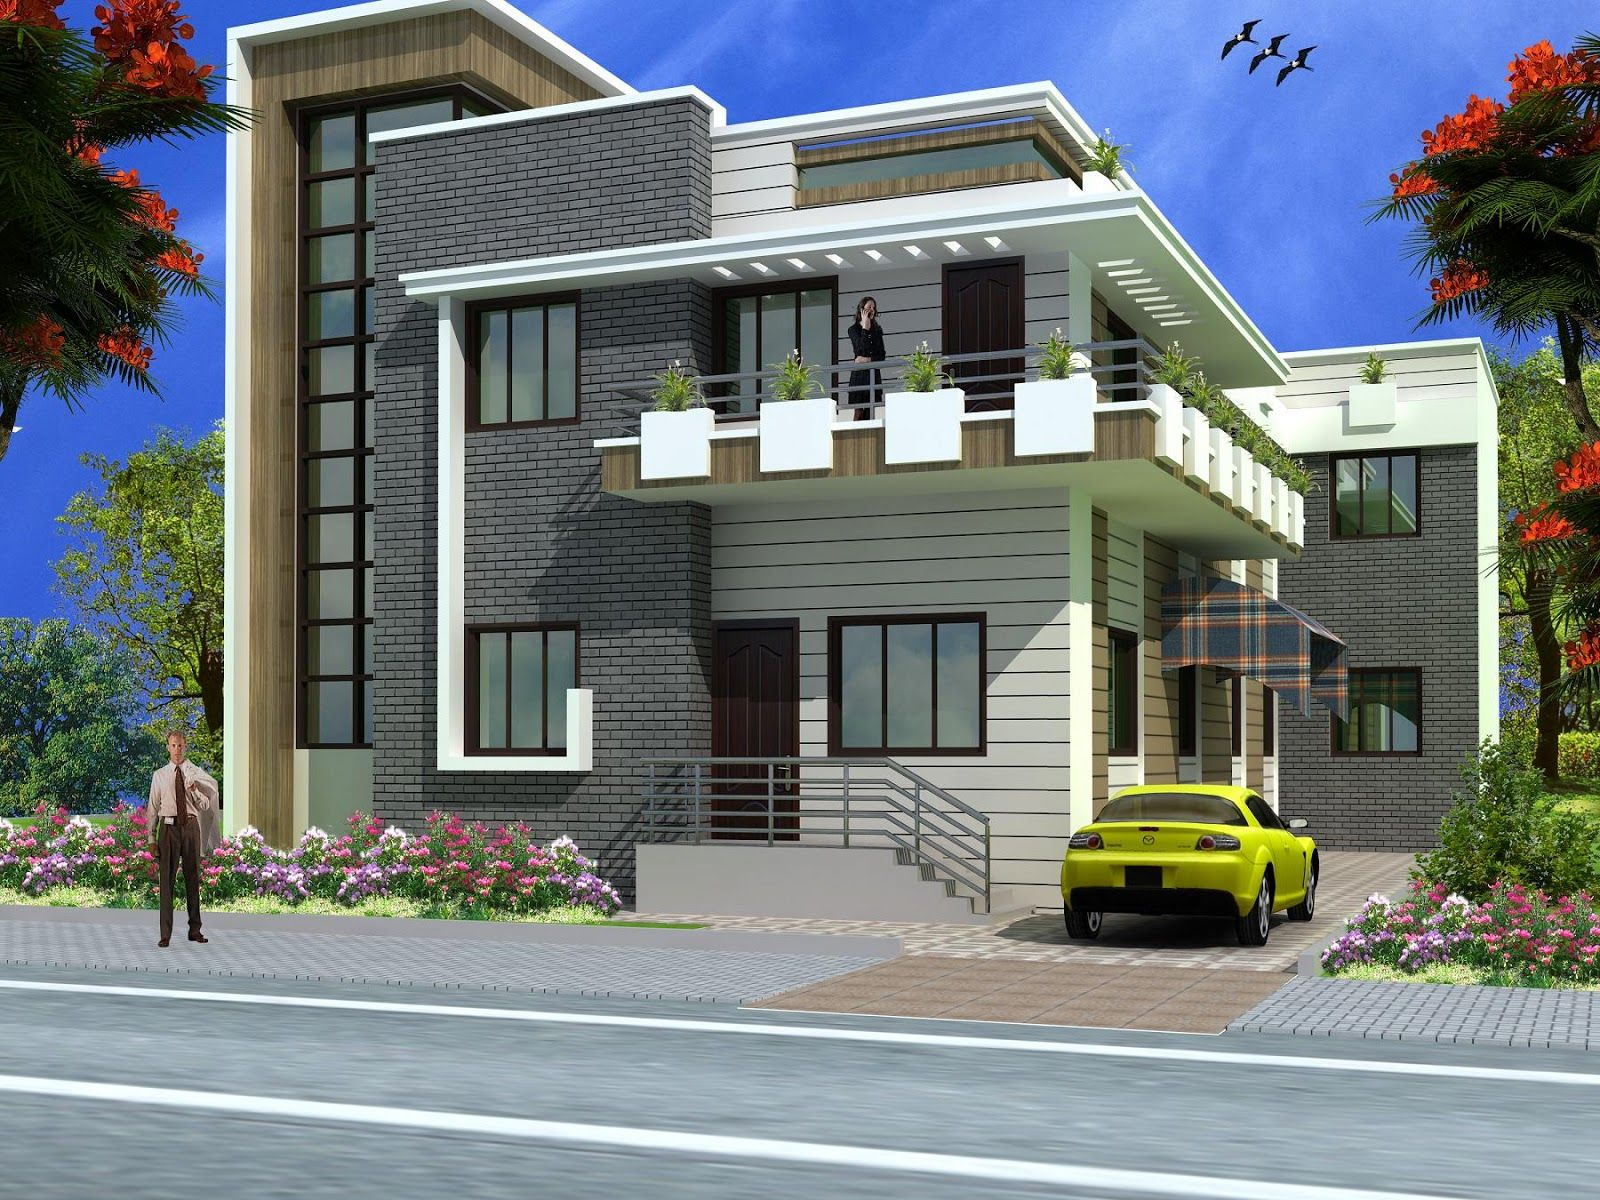 Front Elevation Of House Design In India House Plans And Ideas - House design elevation photo